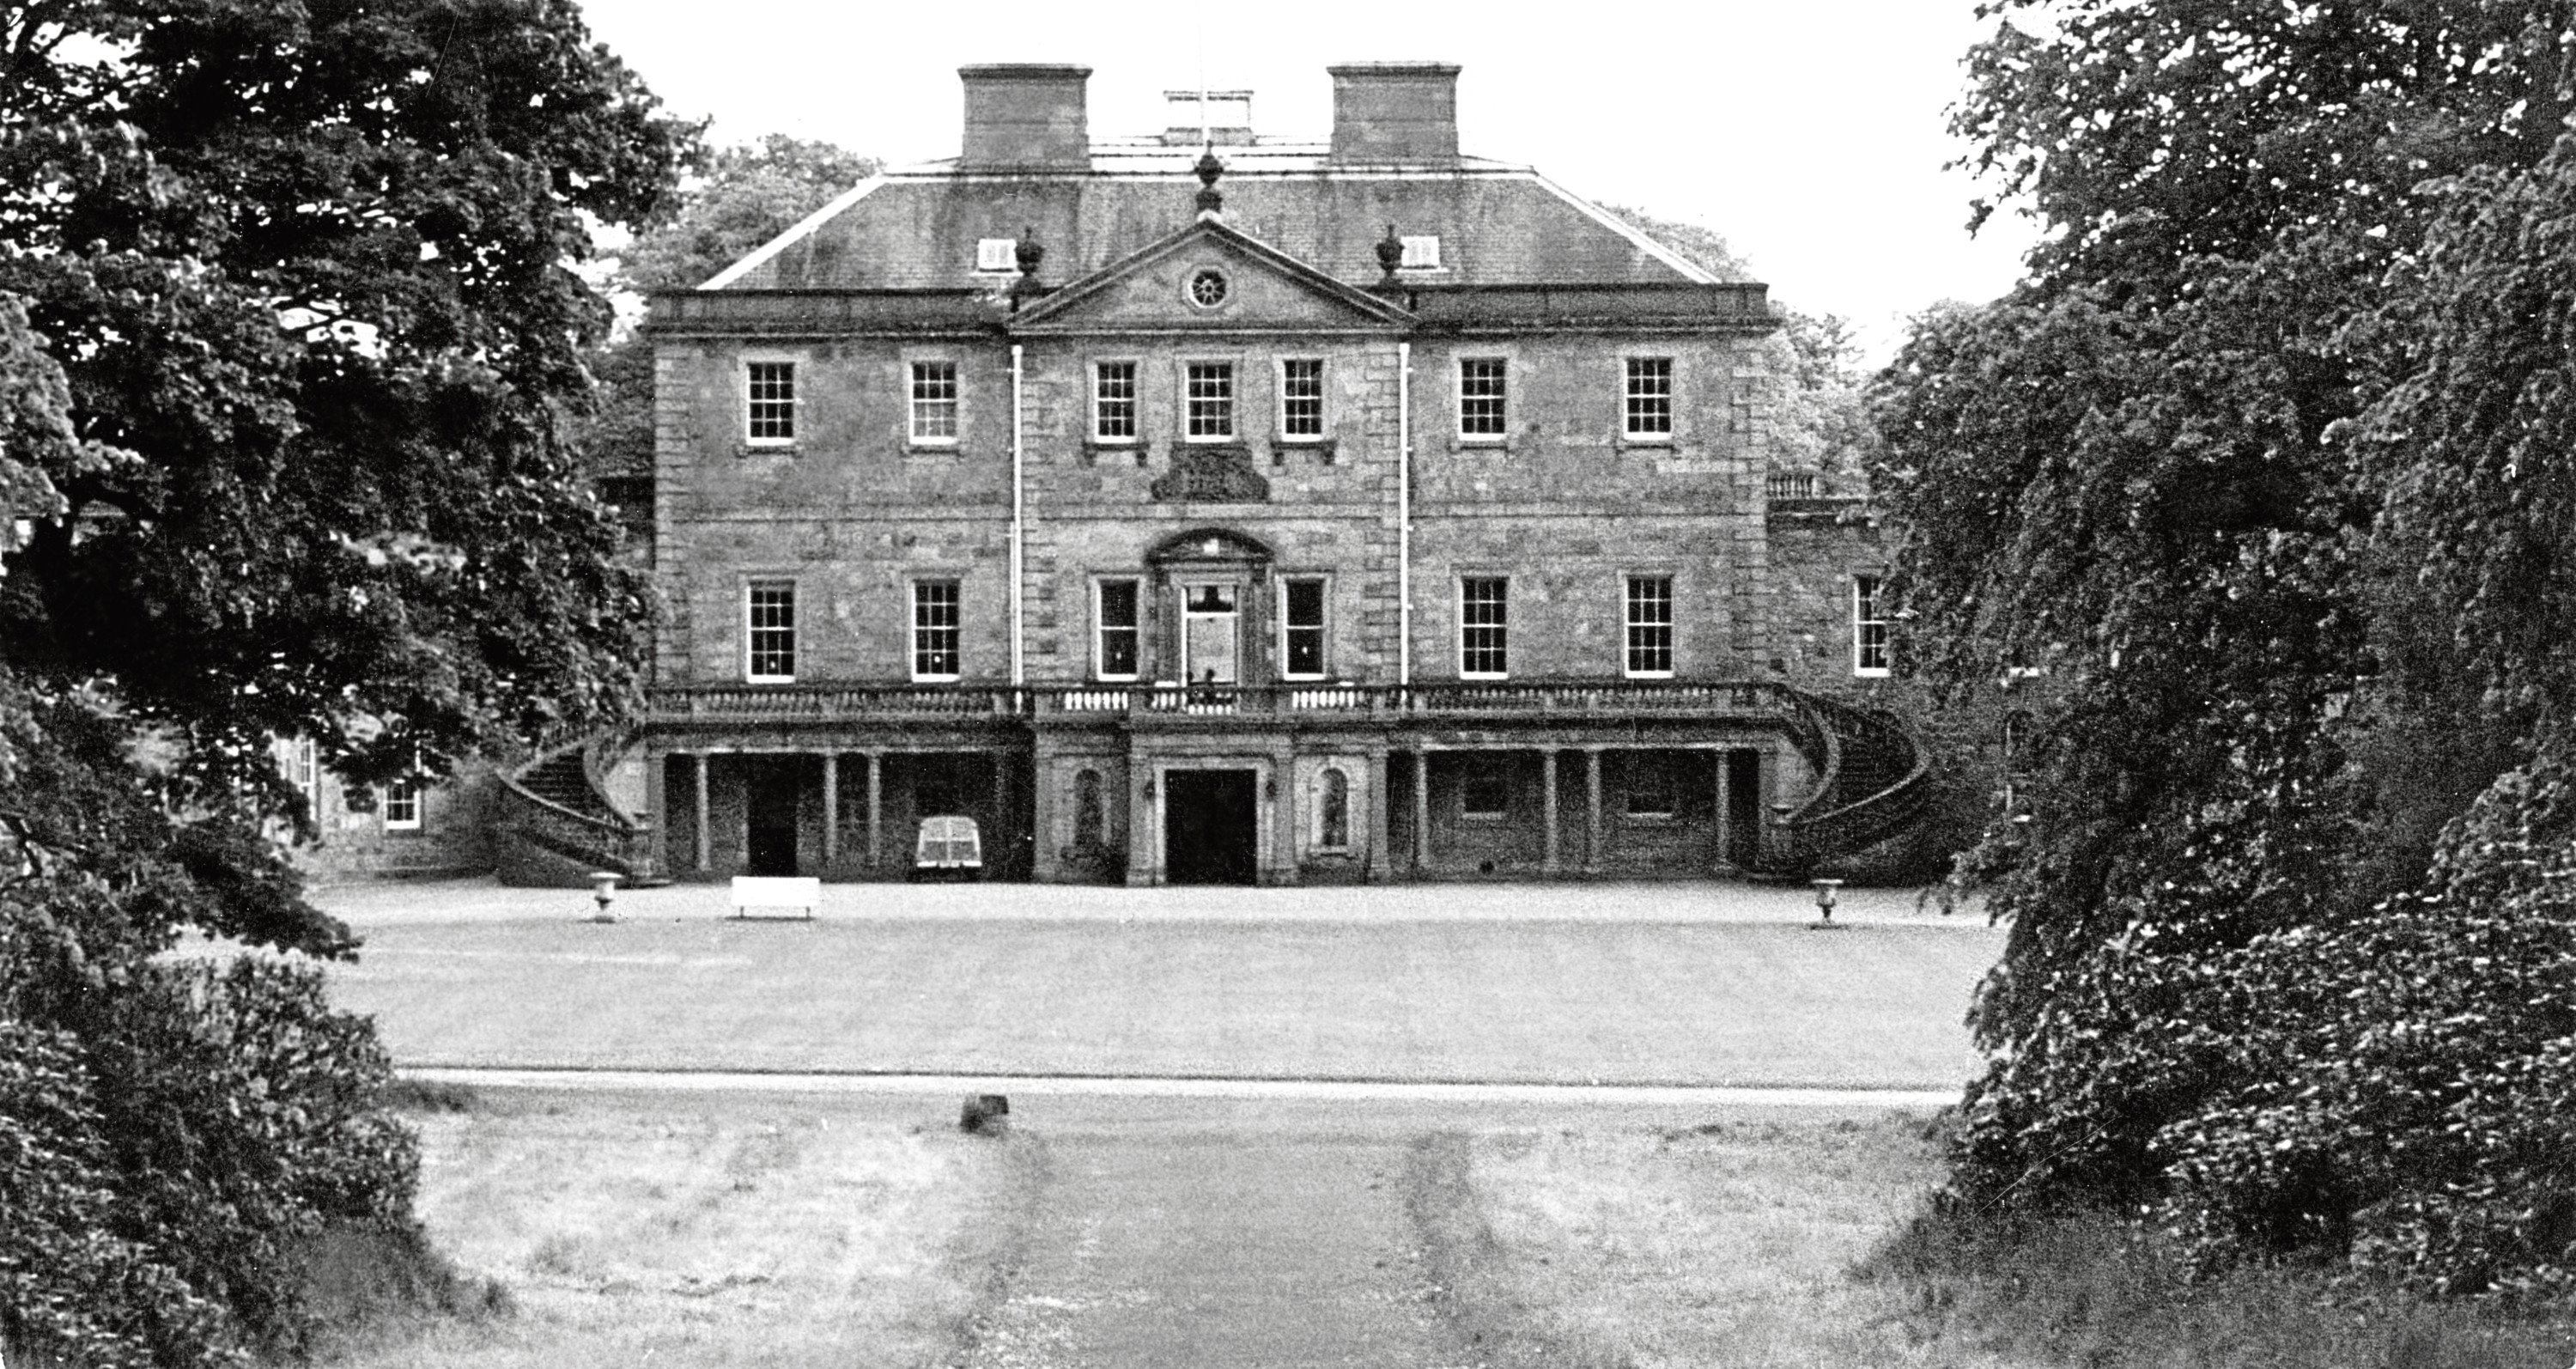 1961: An exterior view of the front entrance and gardens of Haddo House as seen in 1961.